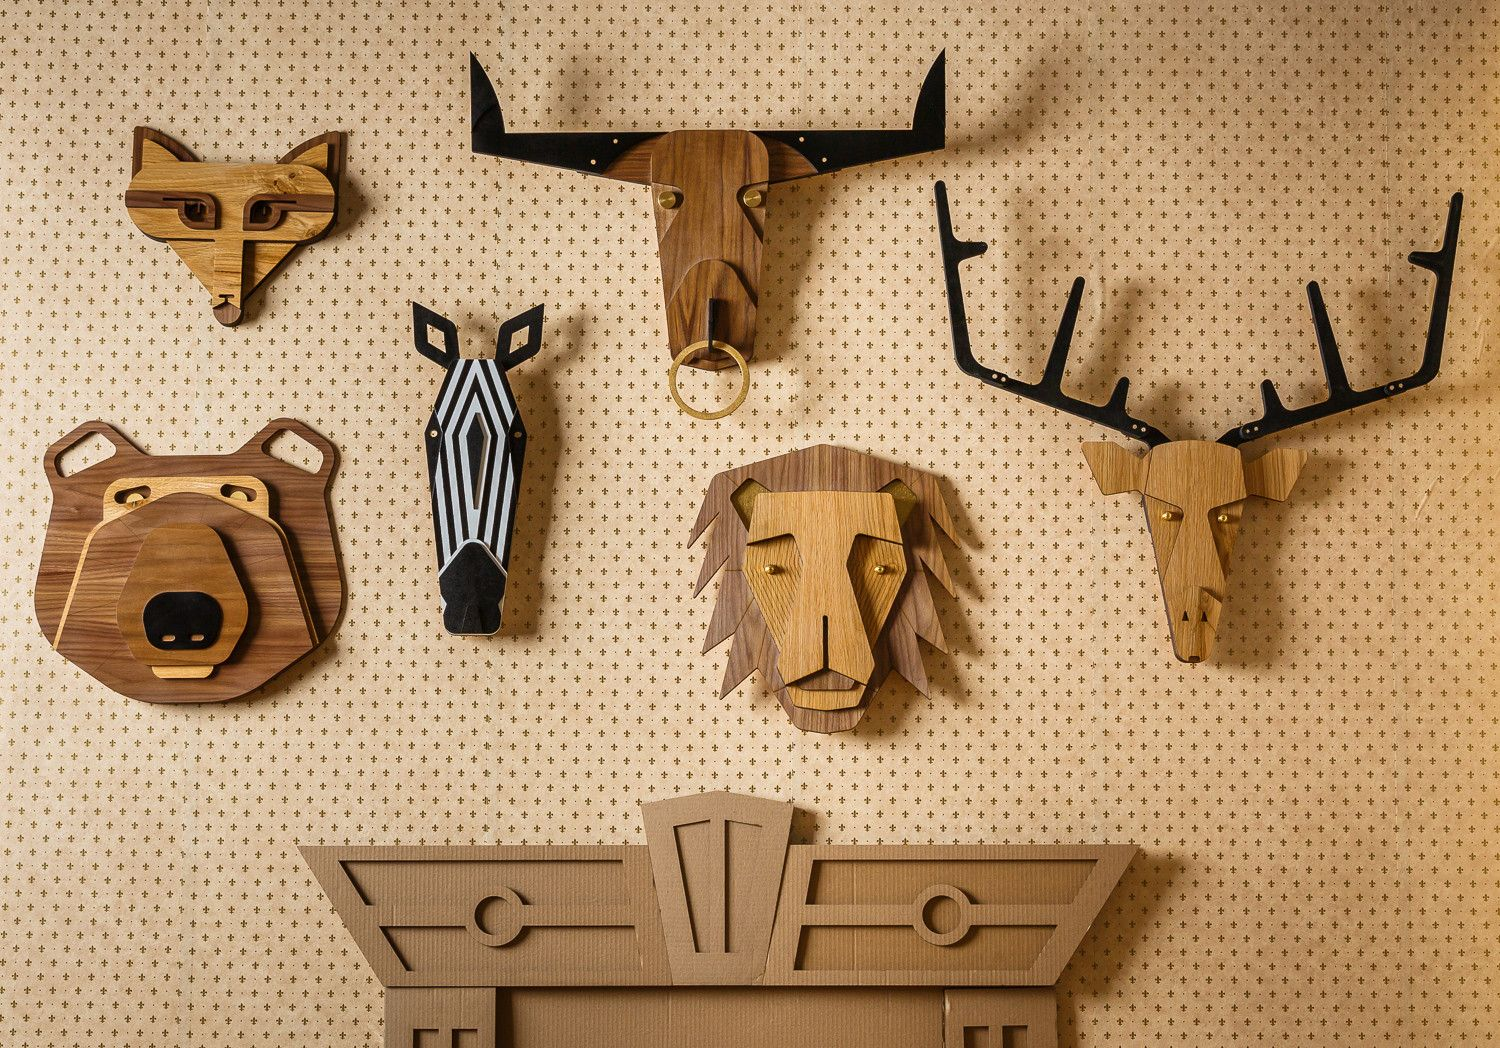 Modern style wooden decorative masks - wall hangings - home decor – Urbanmasquerade